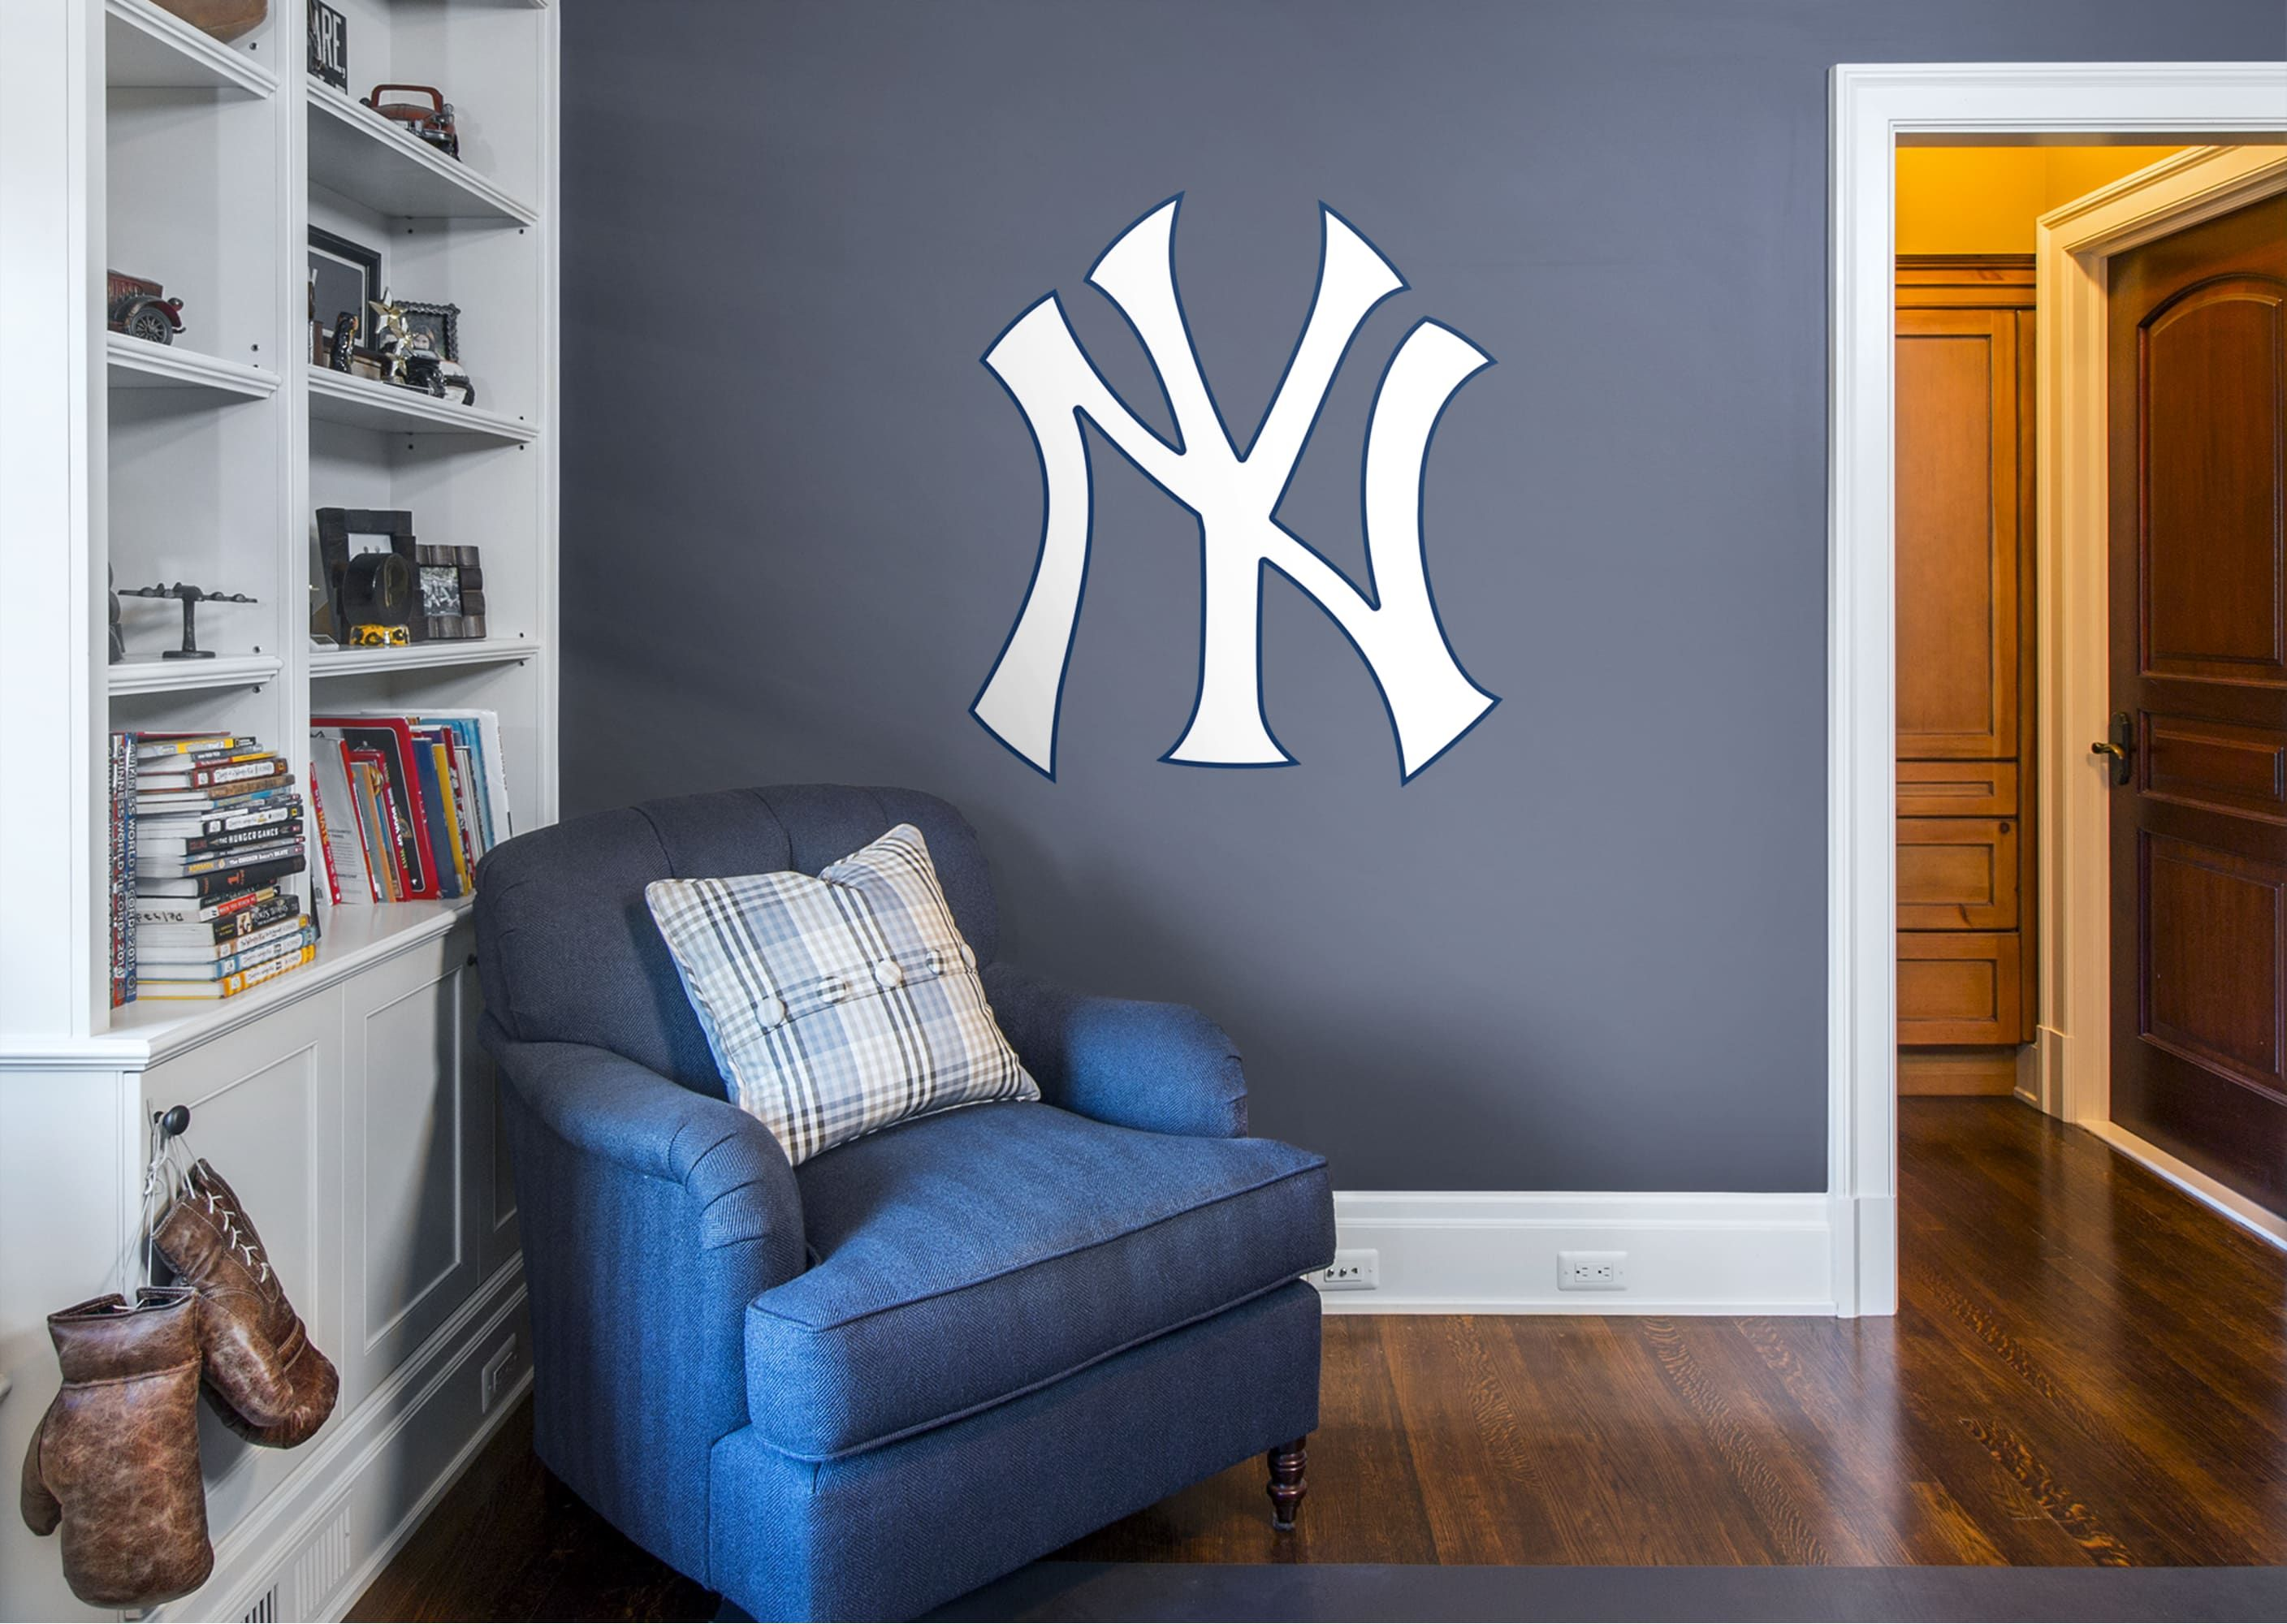 New York Yankees Fan Prove It Put Your Passion On Display With A Giant New York Yankees Logo Giant Officiall Yankee Room Yankee Bedroom Ny Yankees Bedroom